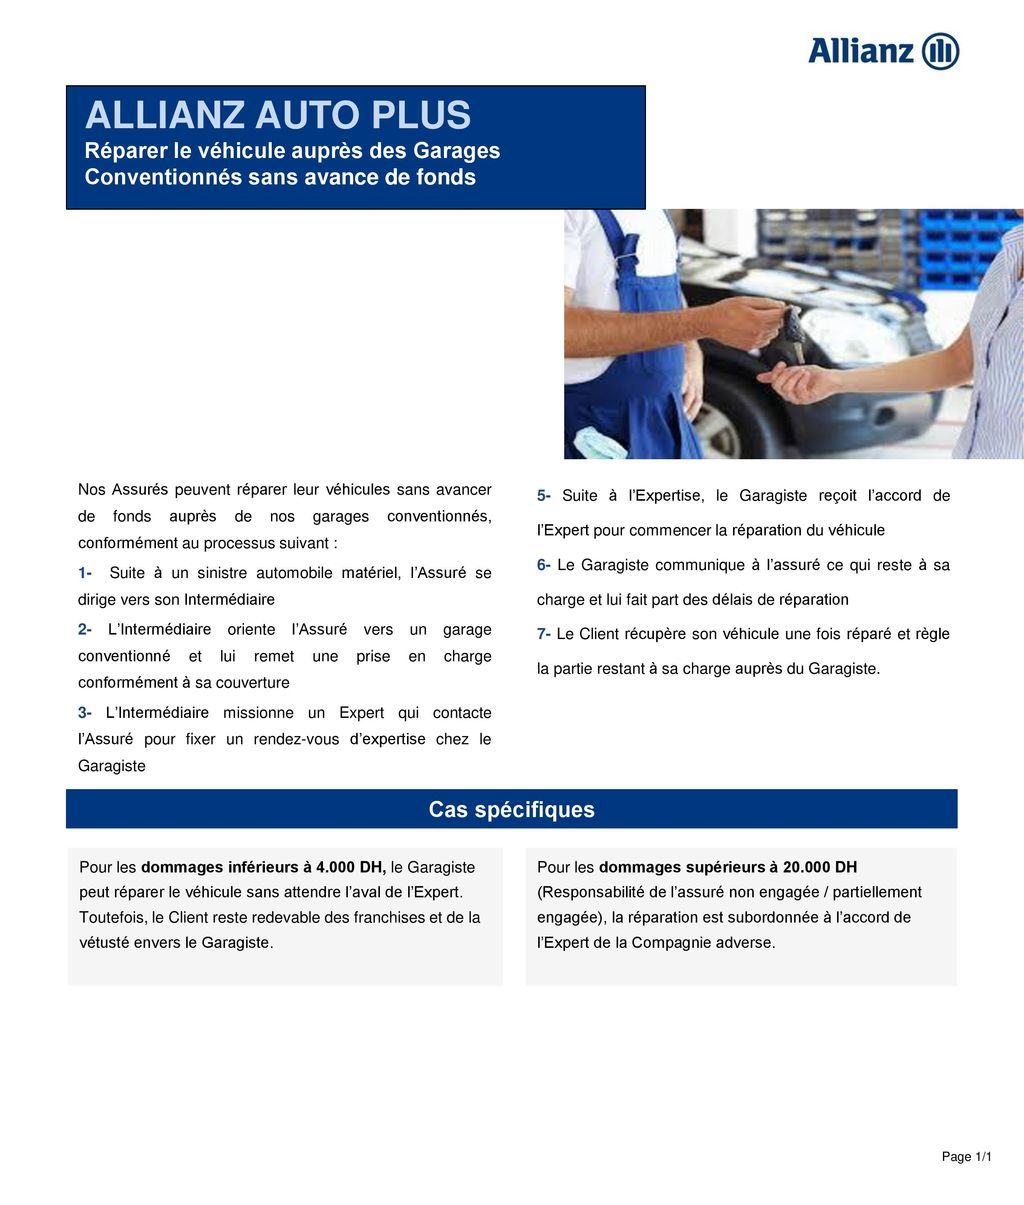 Allianz auto plus r parer le v hicule aupr s des garages for Garage automobile qui fait credit